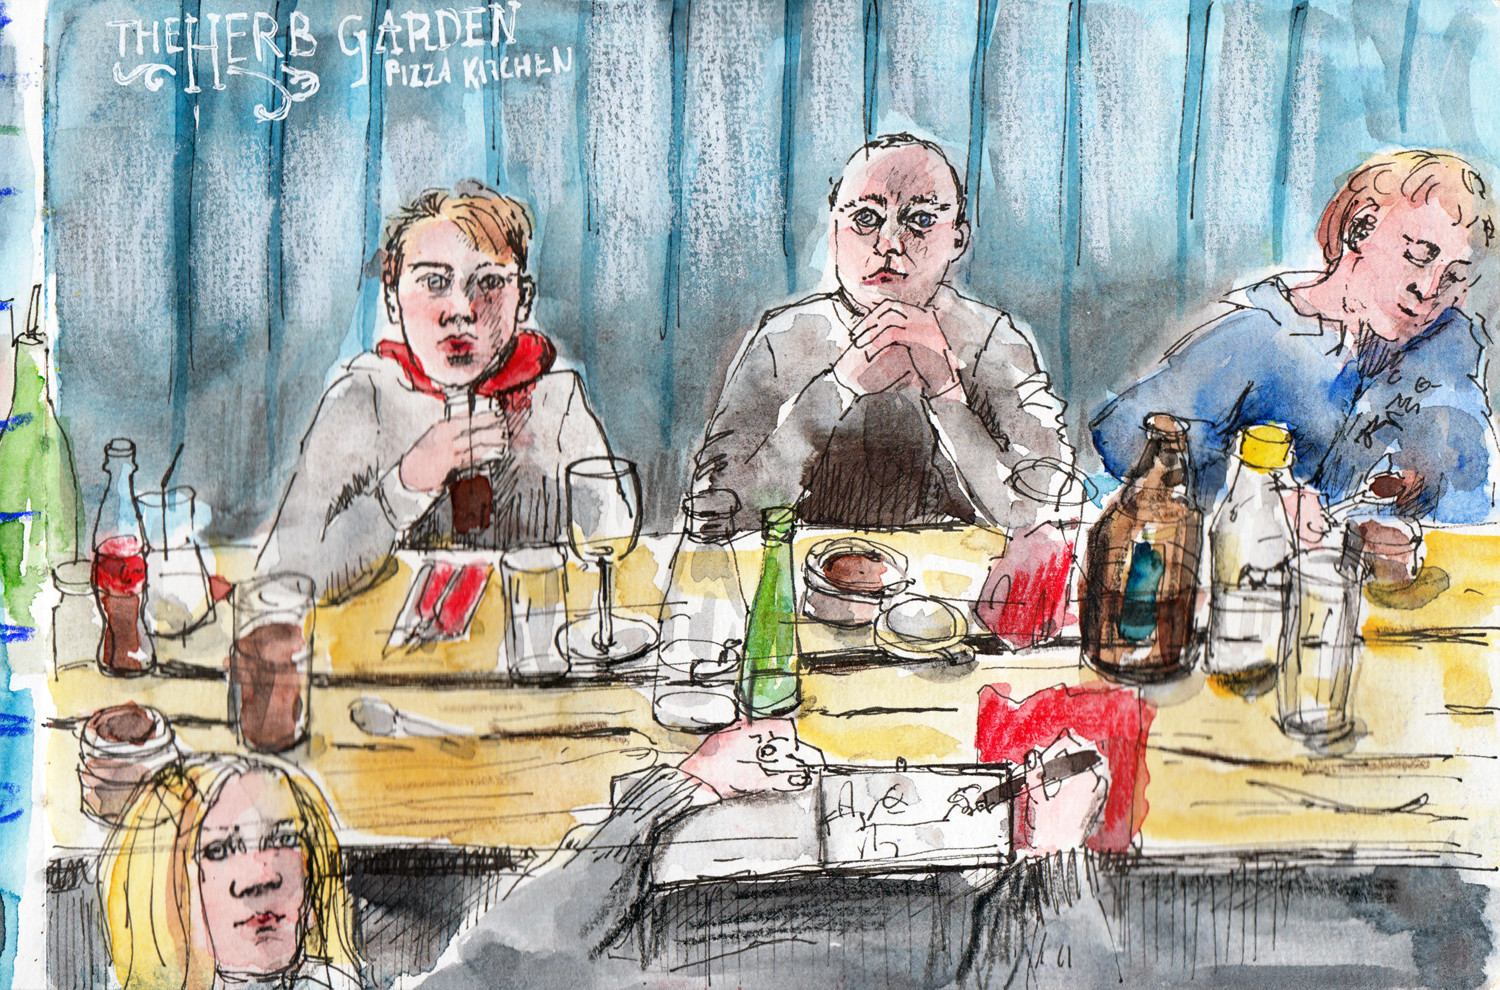 People sketches by Sophie Peanut - Out for dinner with the family